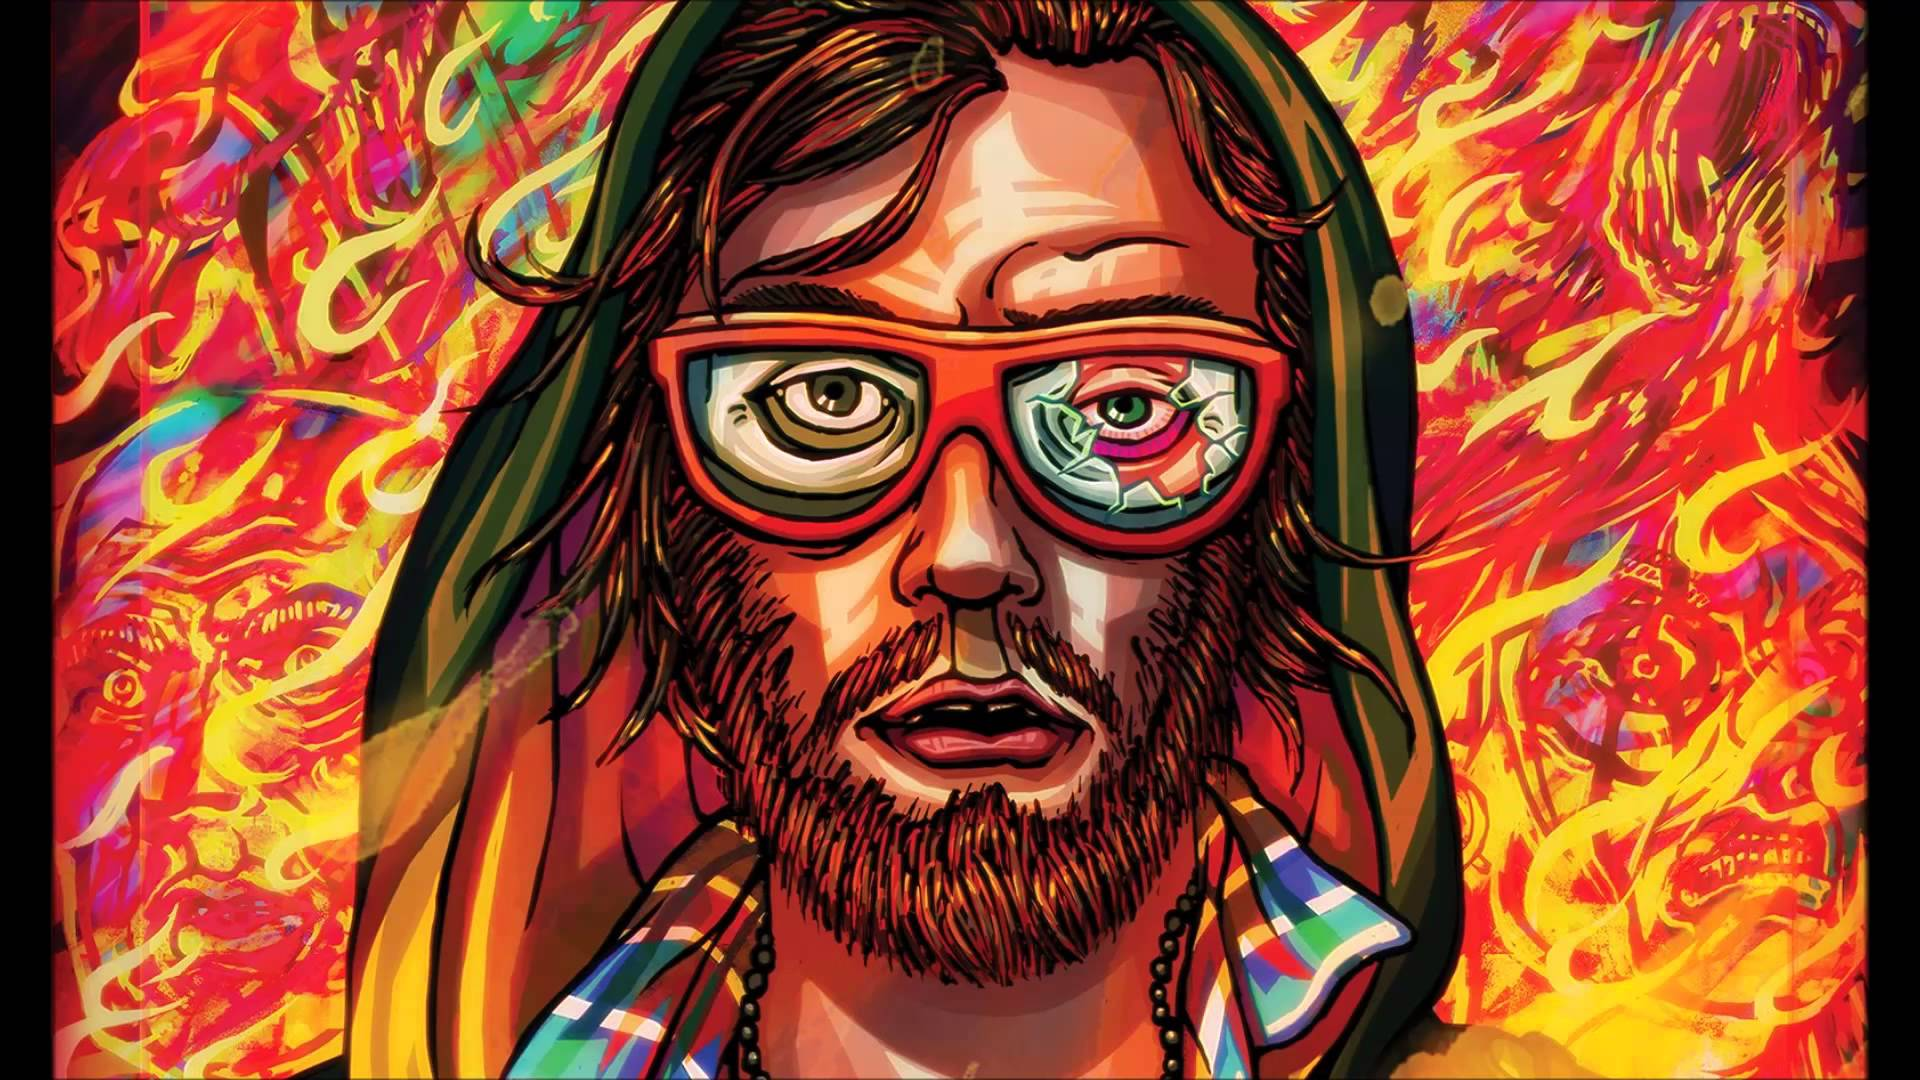 Hotline Miami Iphone Wallpaper Hotline Miami 2 Wrong Number Full Hd Wallpaper And